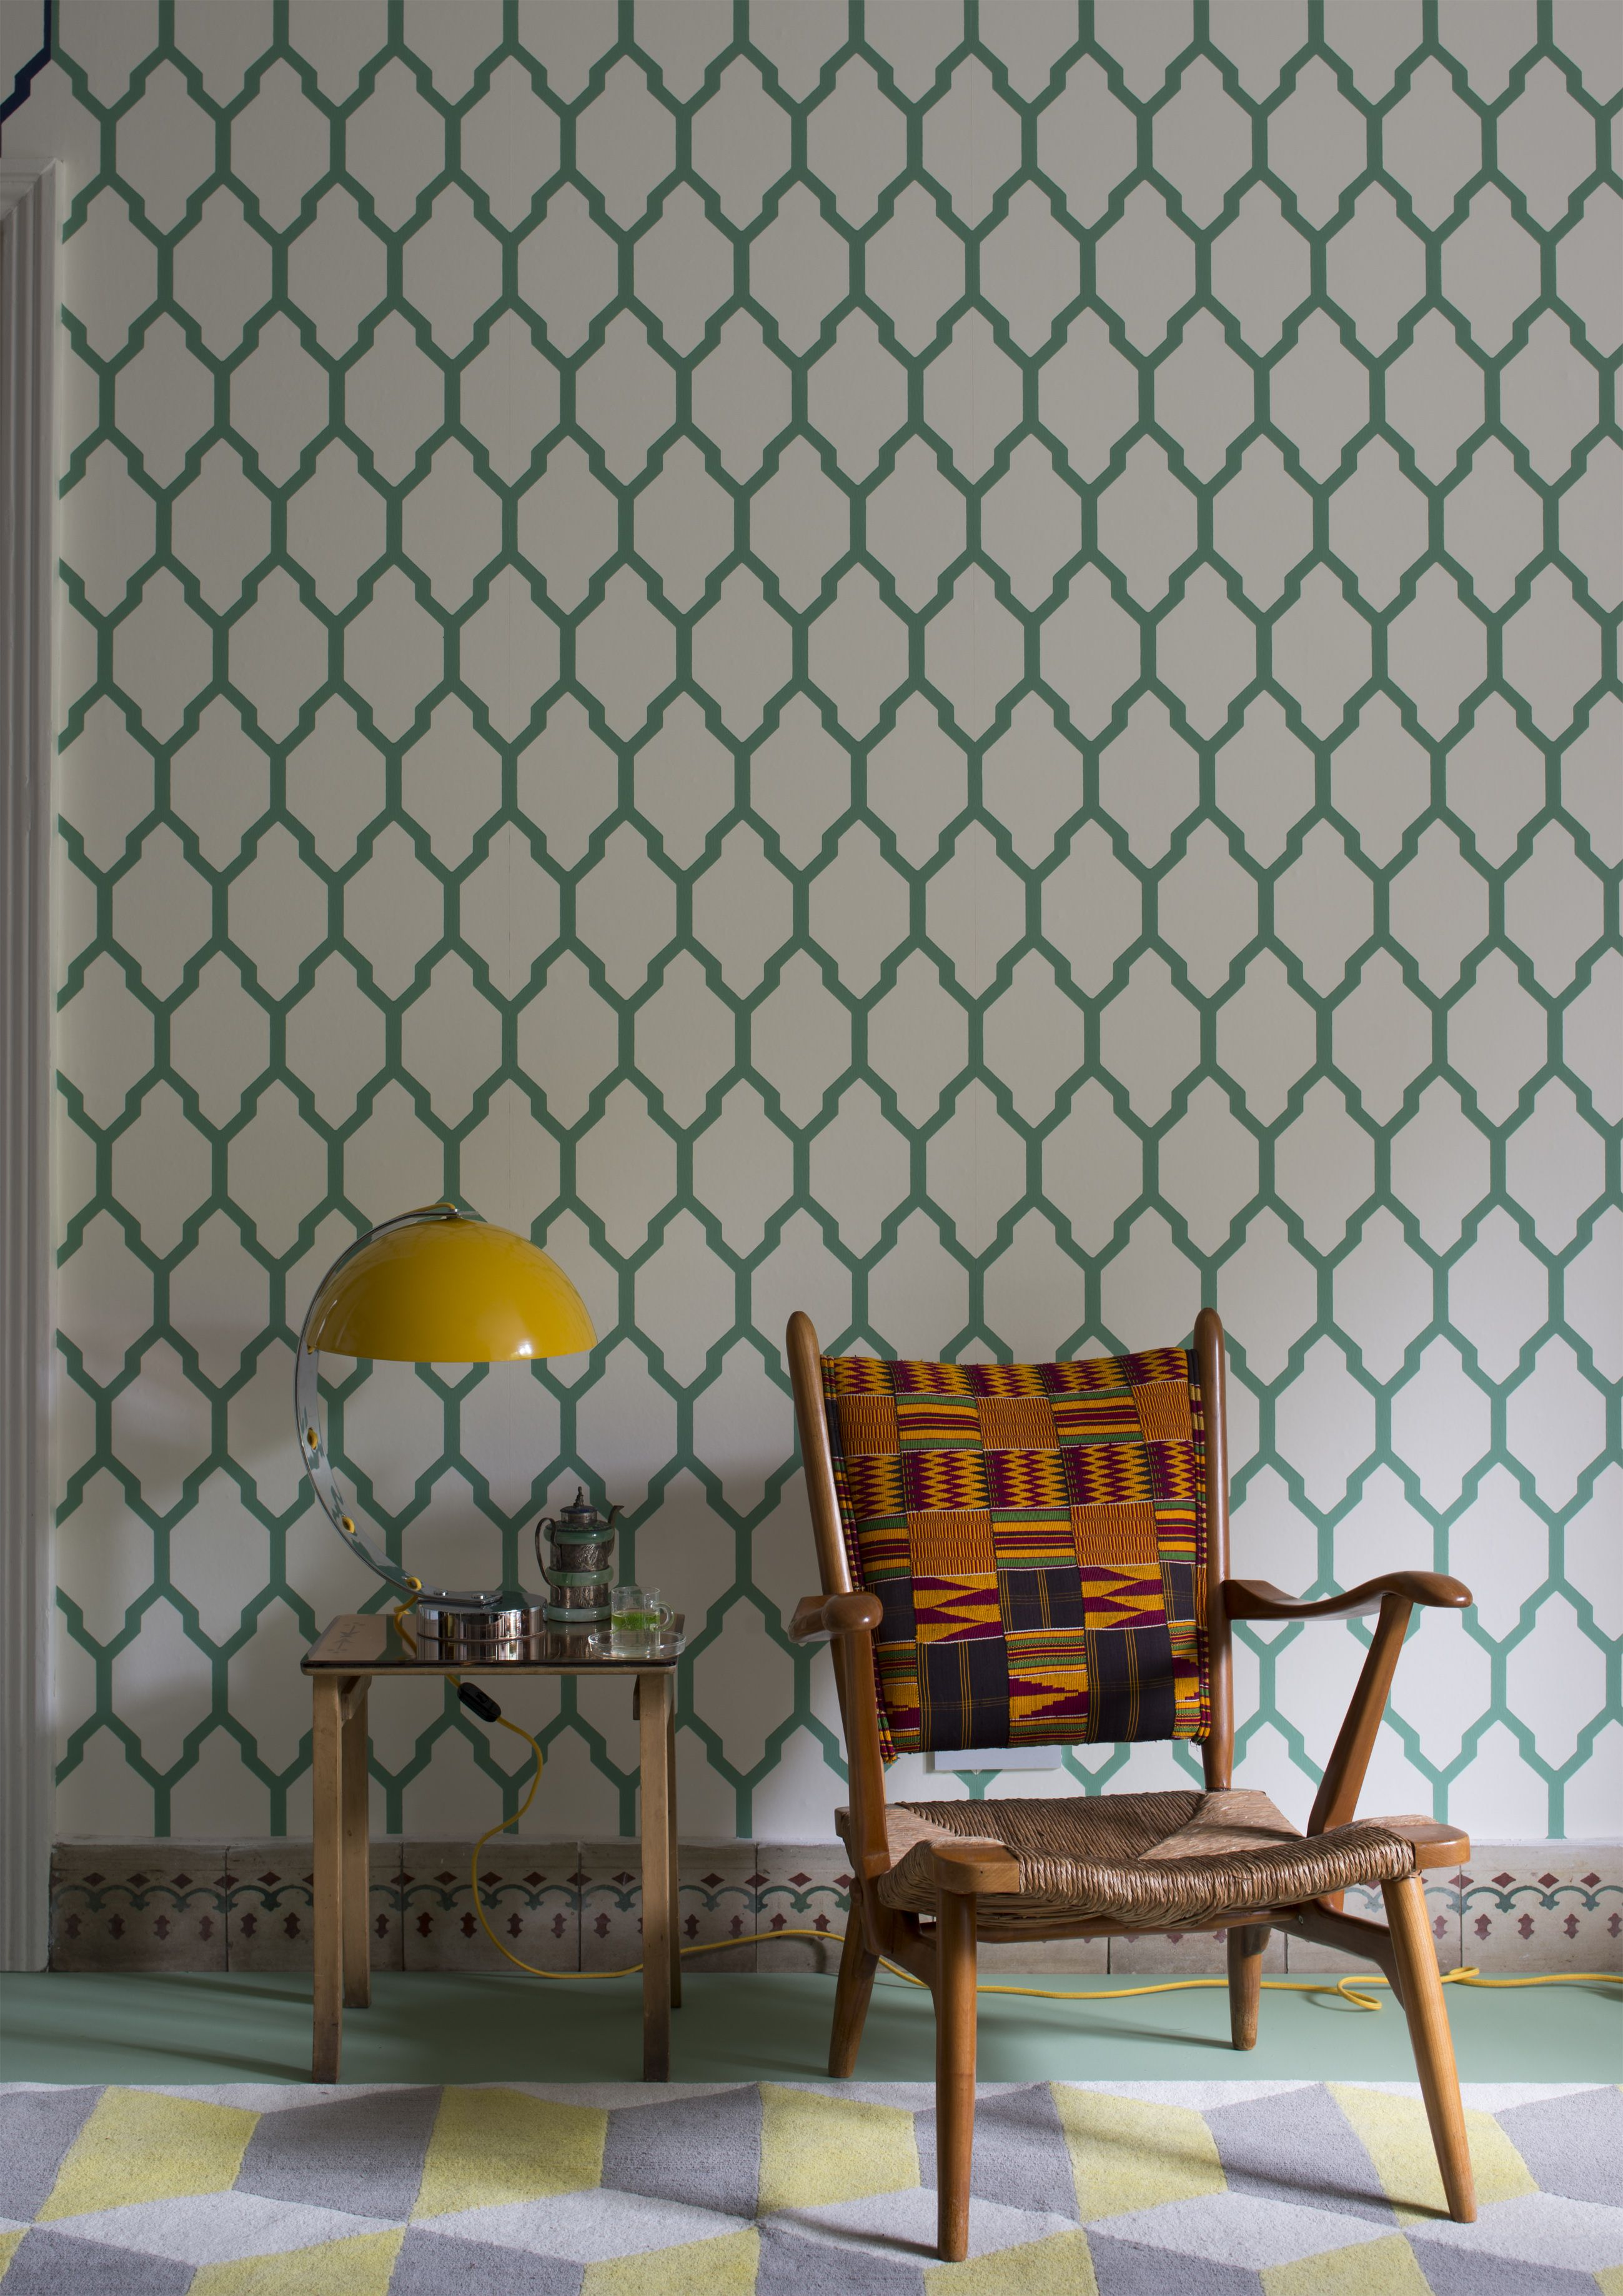 Wallpapers From Farrow Ball Latest Greatest Farrow Ball Wallpaper Farrow Ball Geometric Wallpaper Farrow and ball wallpaper samples